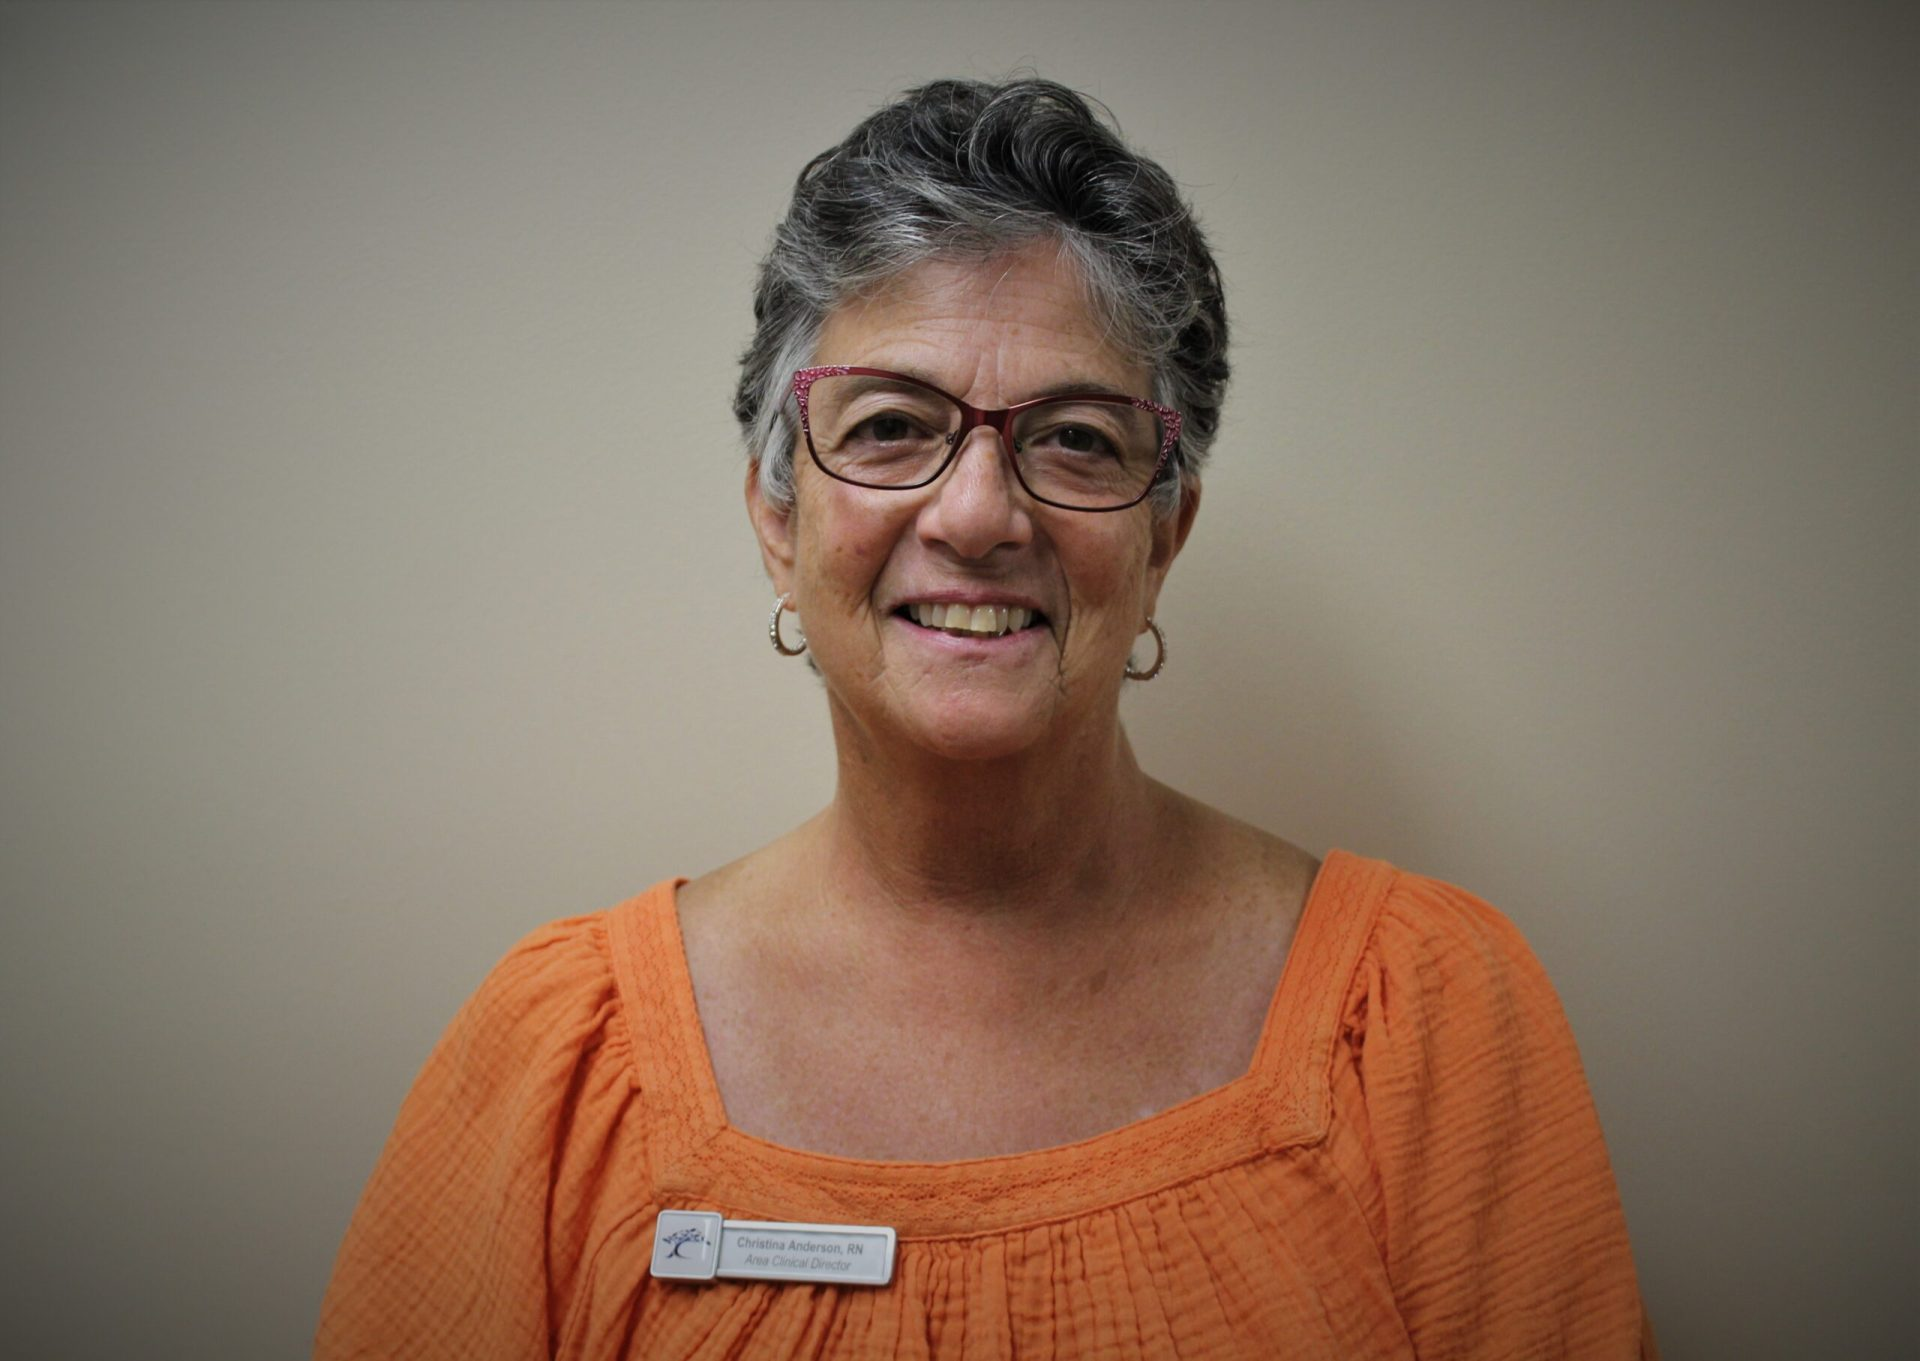 Cris Anderson – Area Clinical Director_ hired July 13 2020